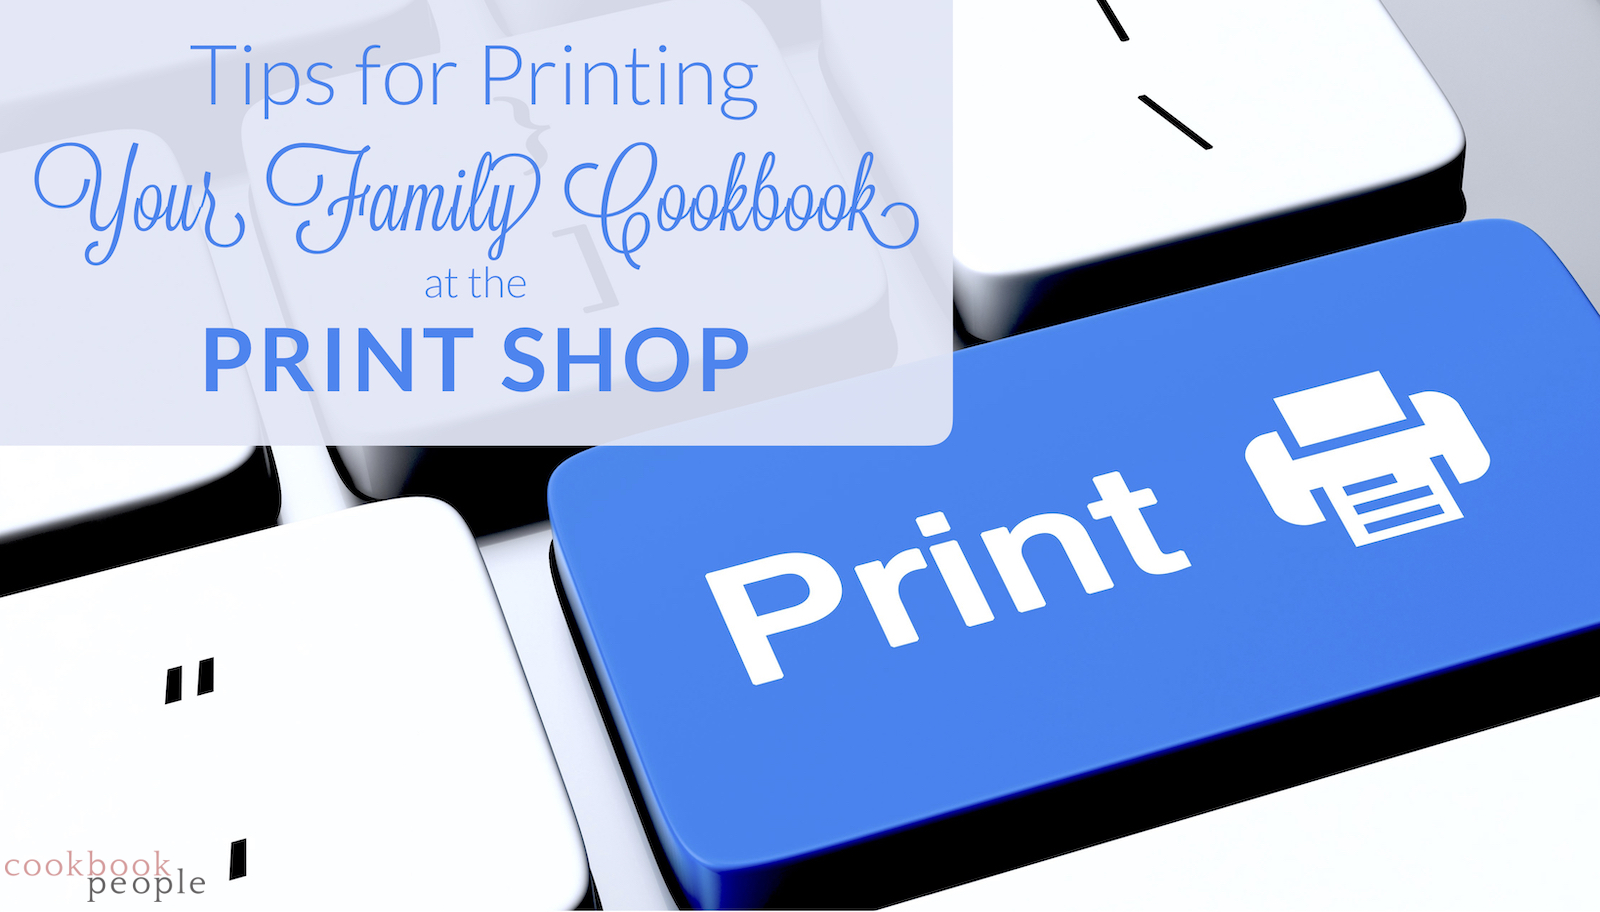 Blue computer print button with title: Tips for Printing Your Family Cookbook at the Print Shop